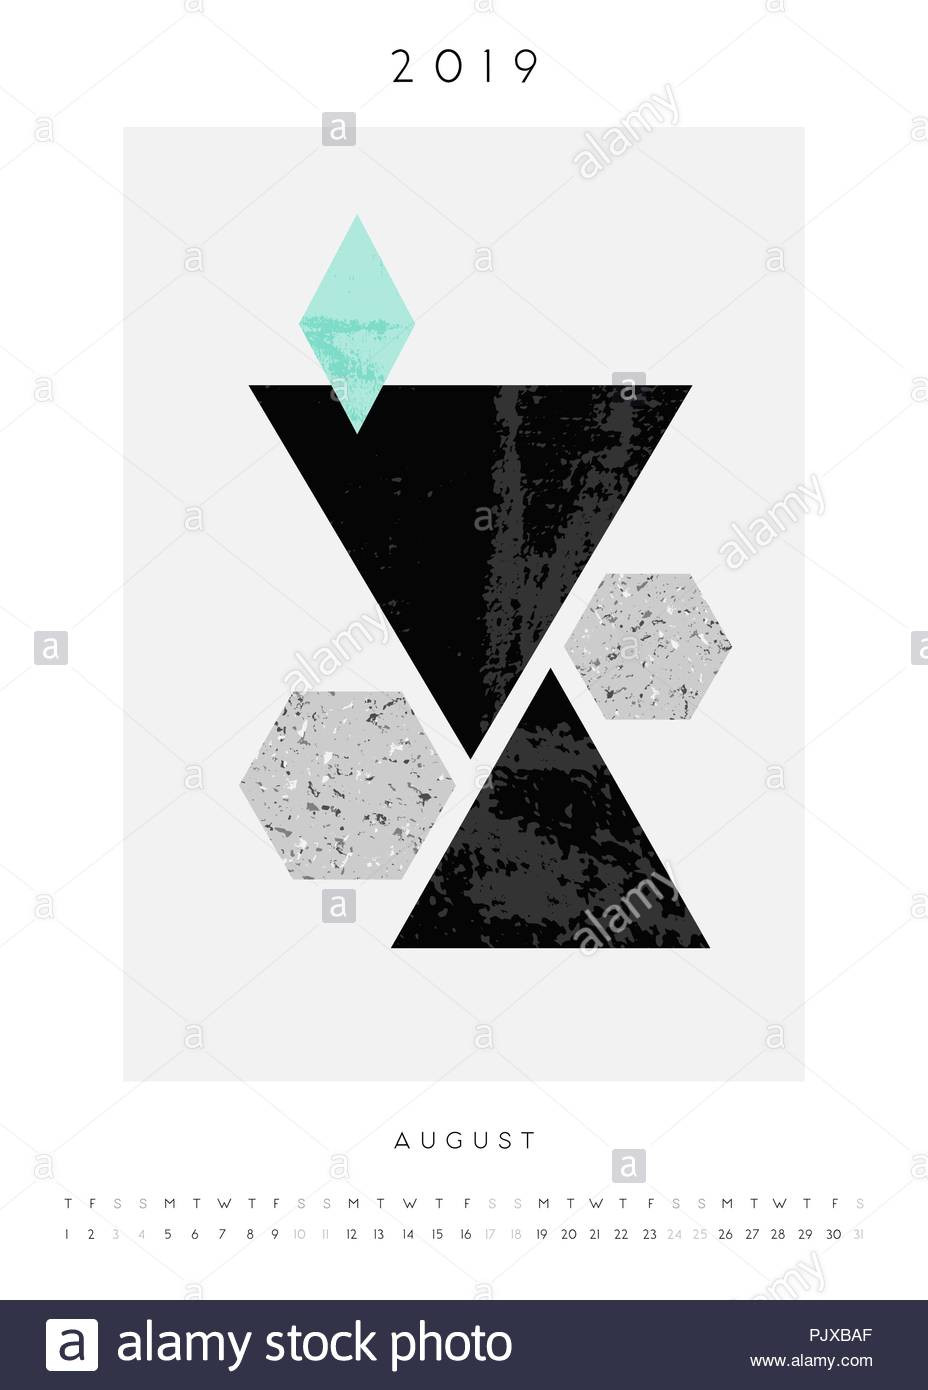 Geometry Template Printable Printable A4 Size August 2019 Calendar Template Abstract